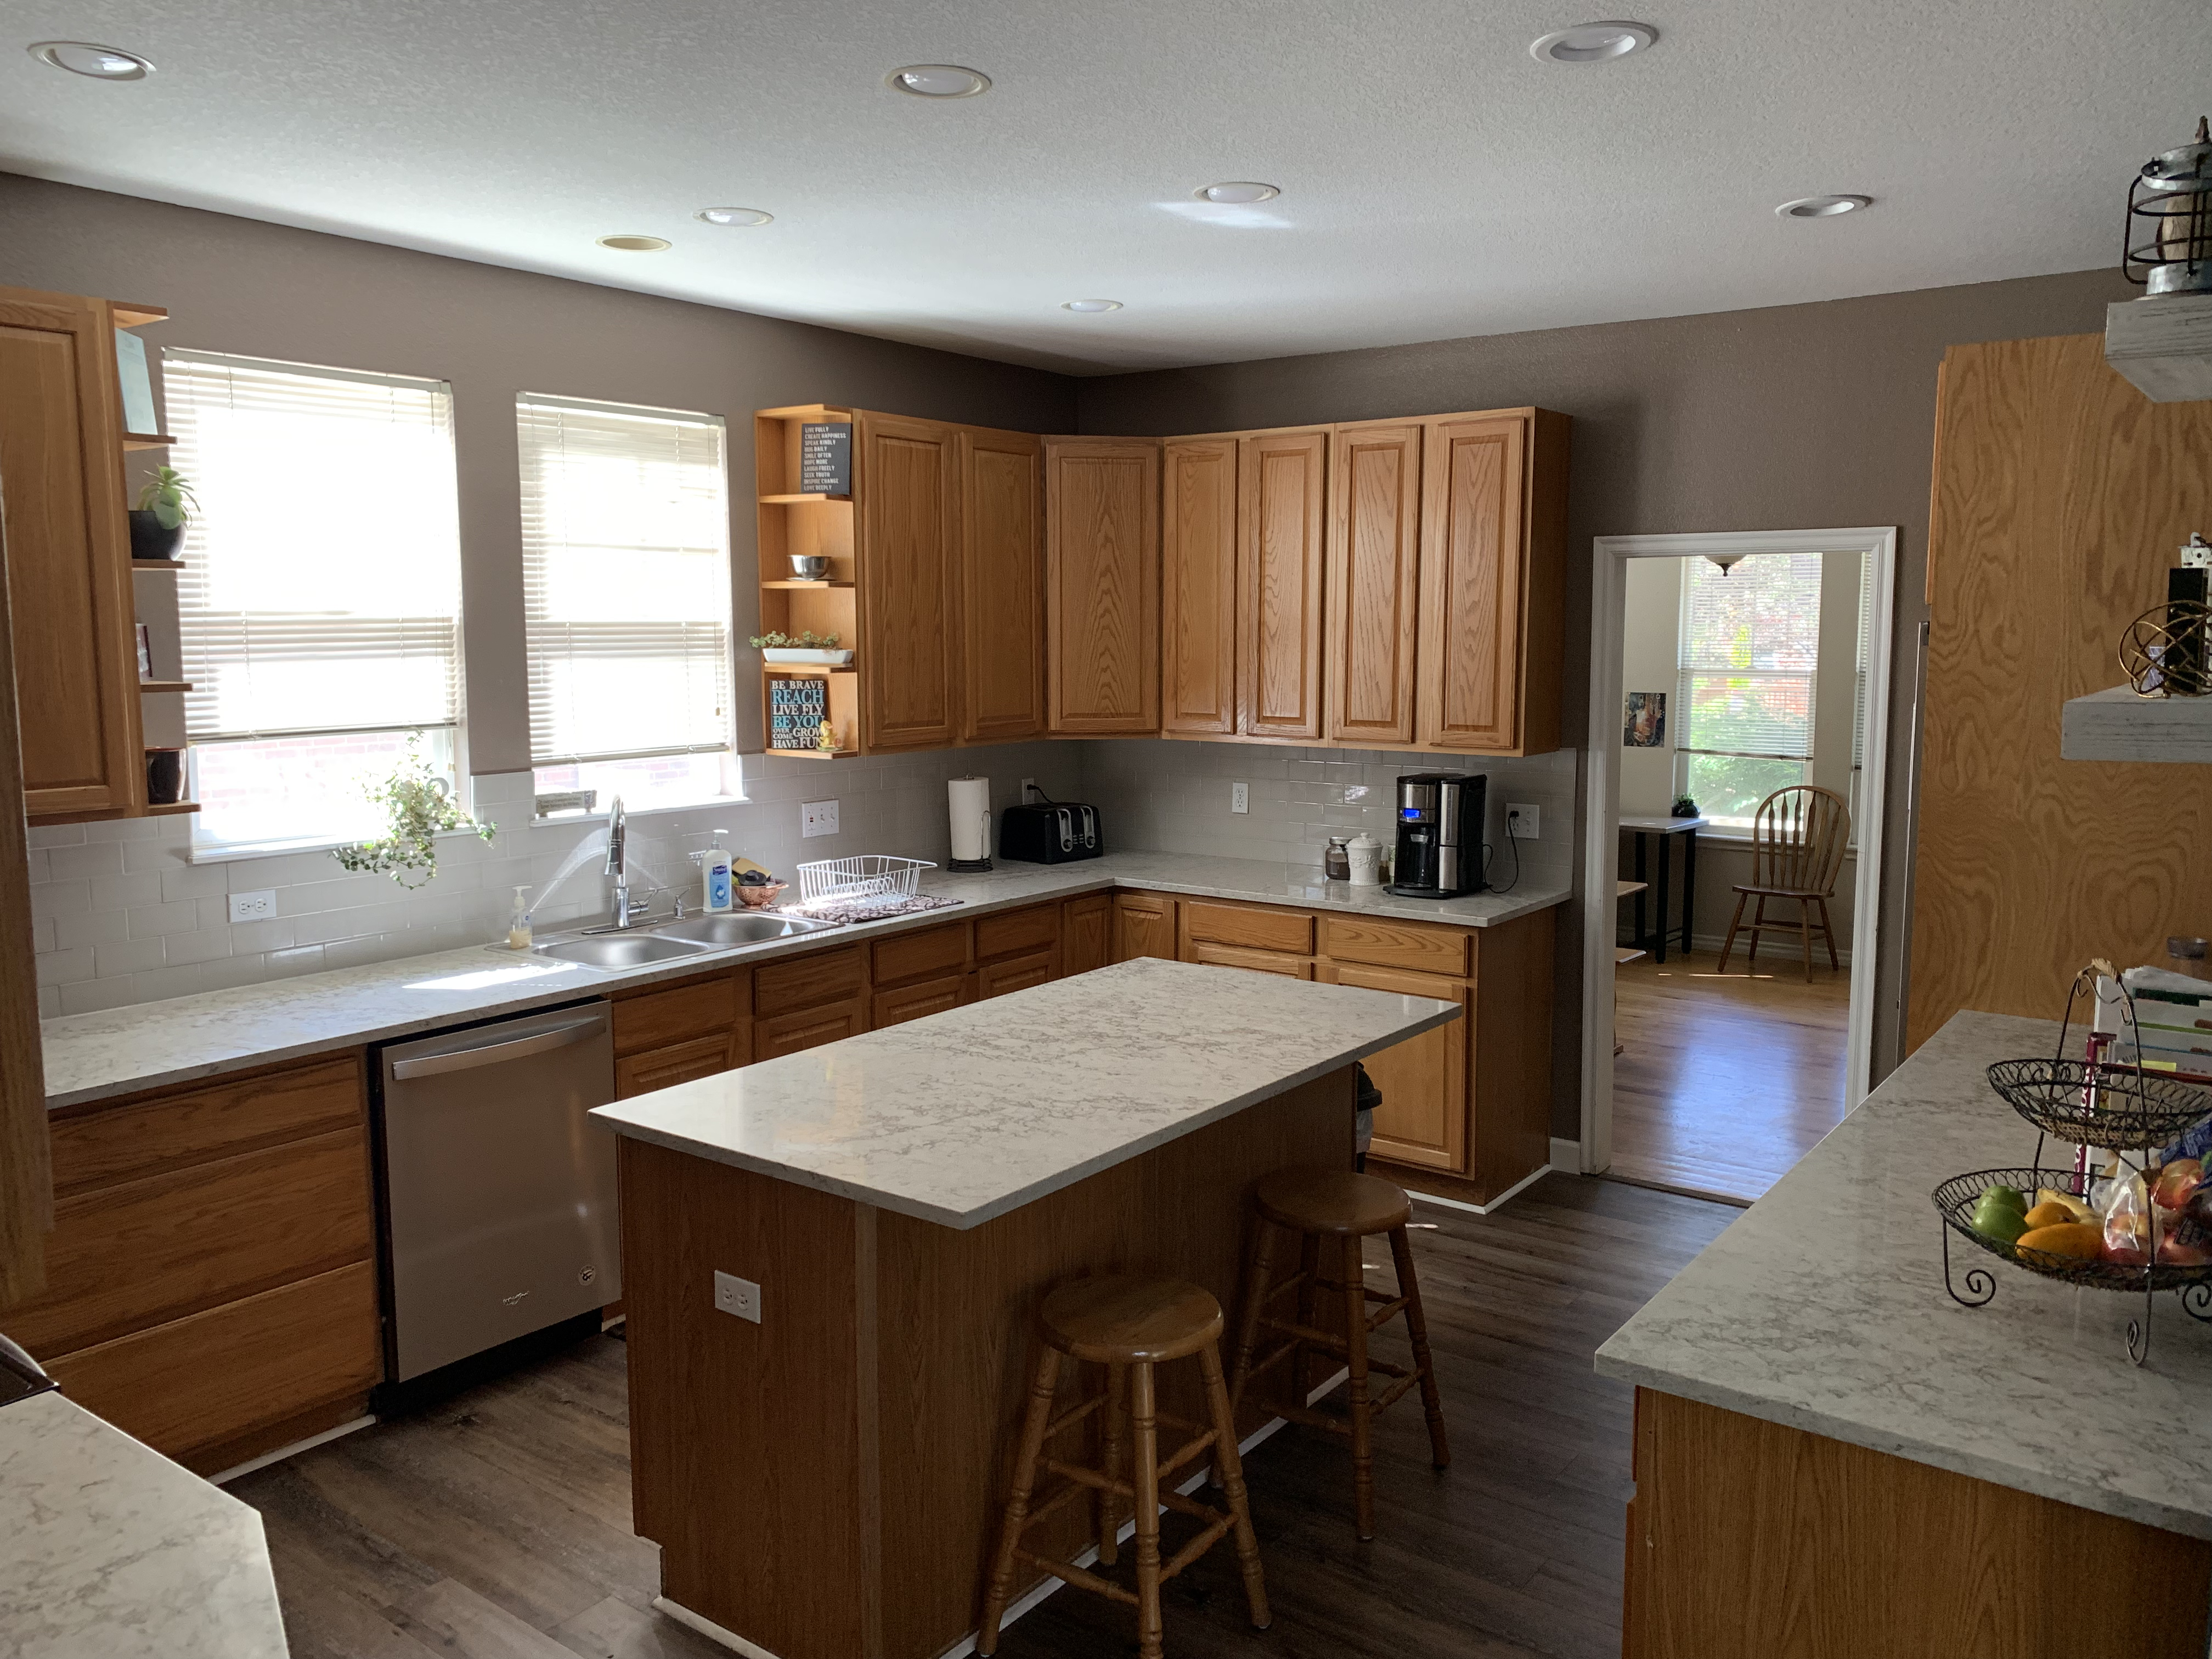 Discovery Home Kitchen Remodel